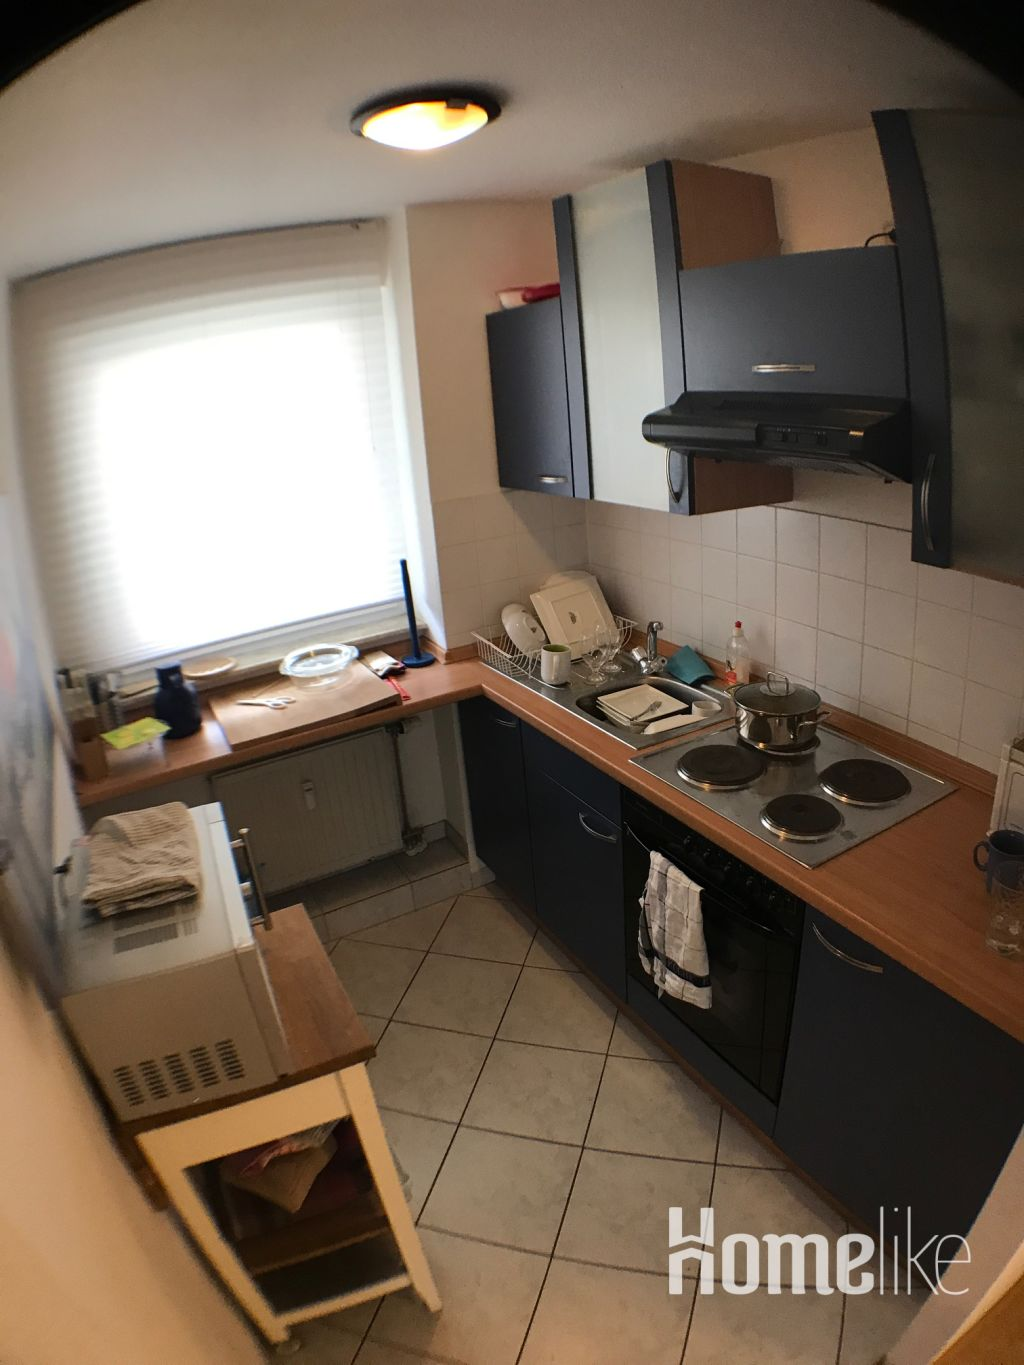 image 4 furnished 1 bedroom Apartment for rent in Dusseltal, Dusseldorf